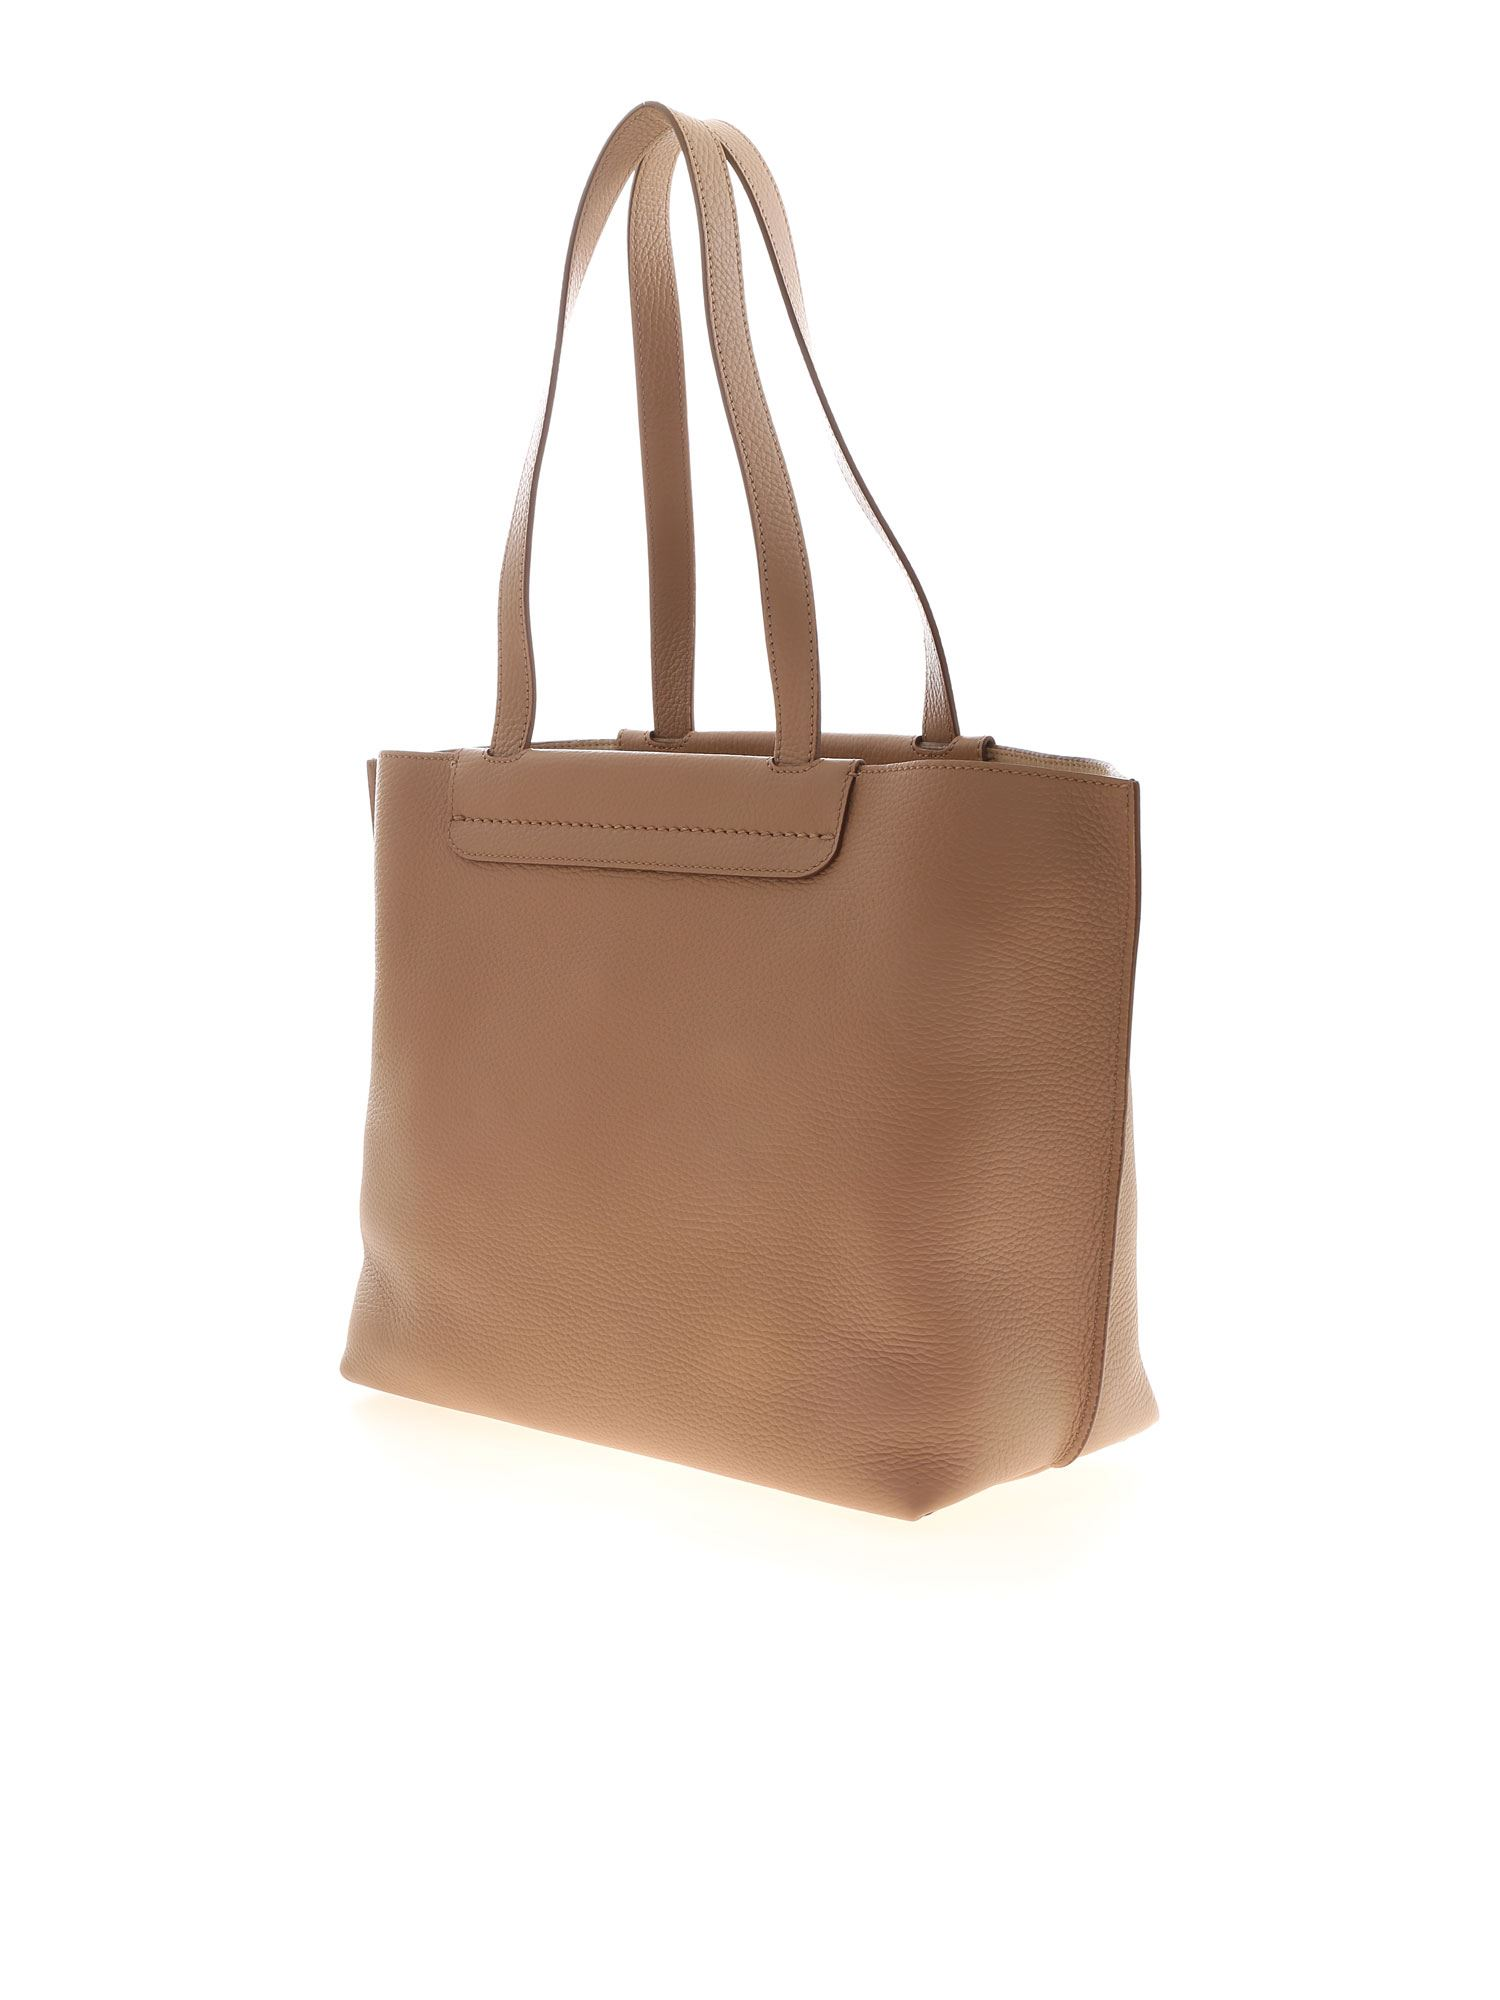 MEDIUM SHOPPER BAG IN BEIGE TOD